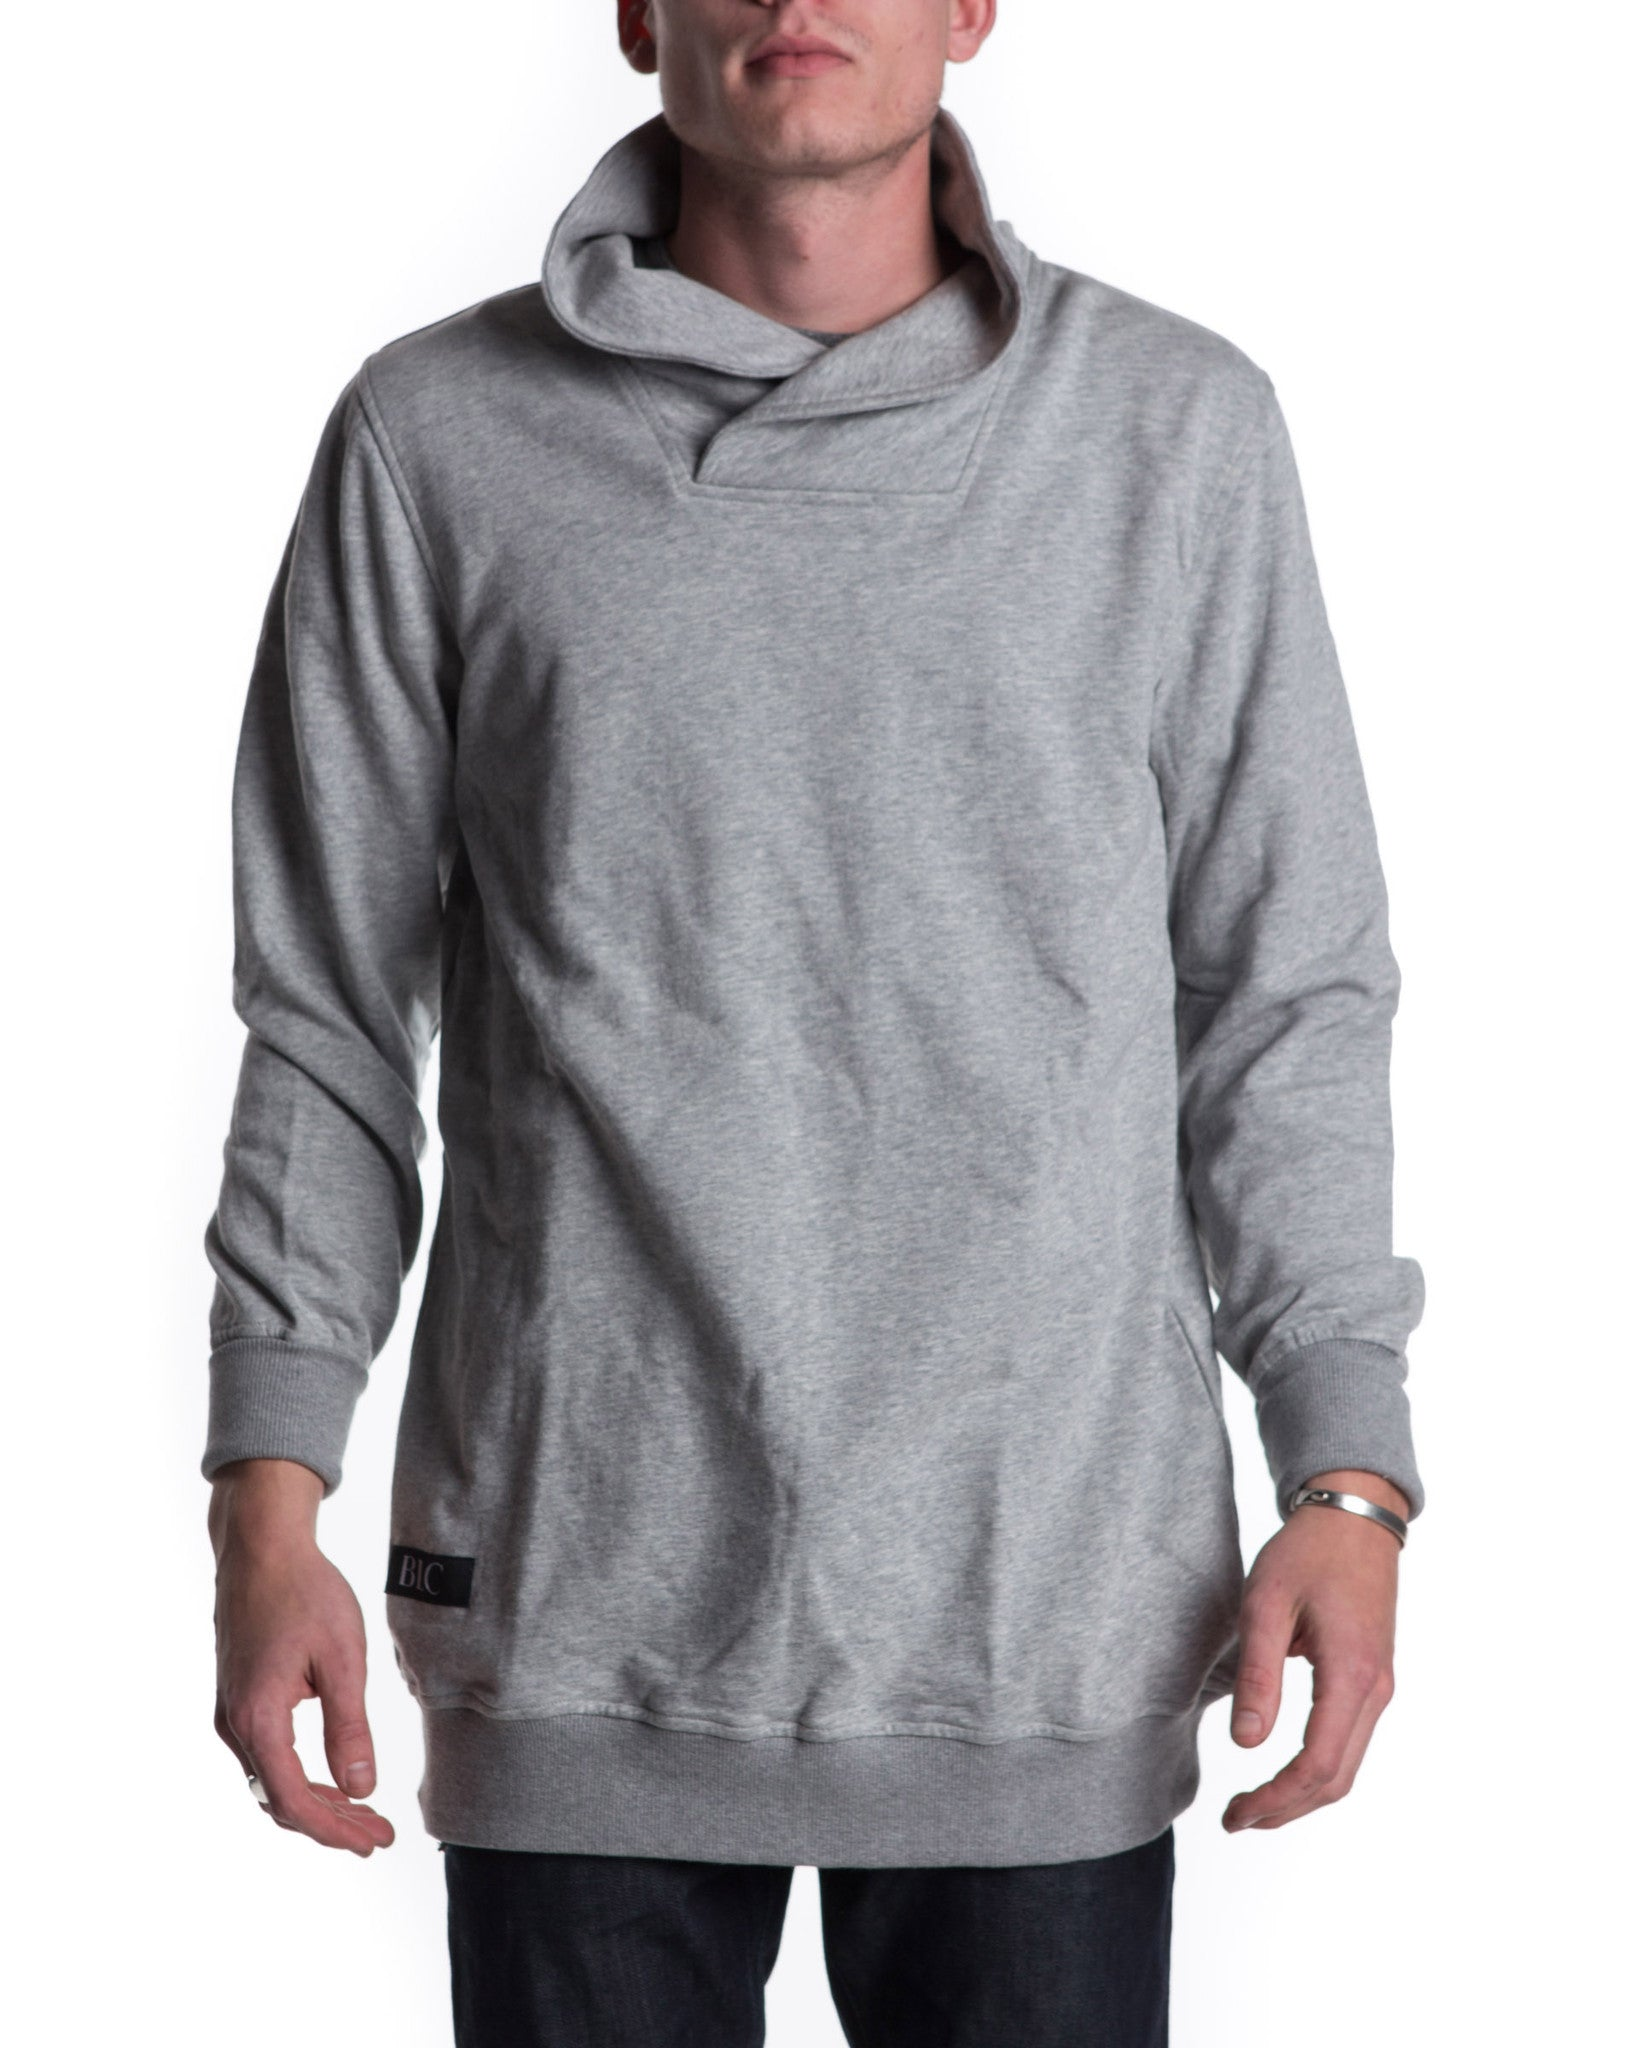 Shawl Collar Pullover Sweatshirt (Grey)